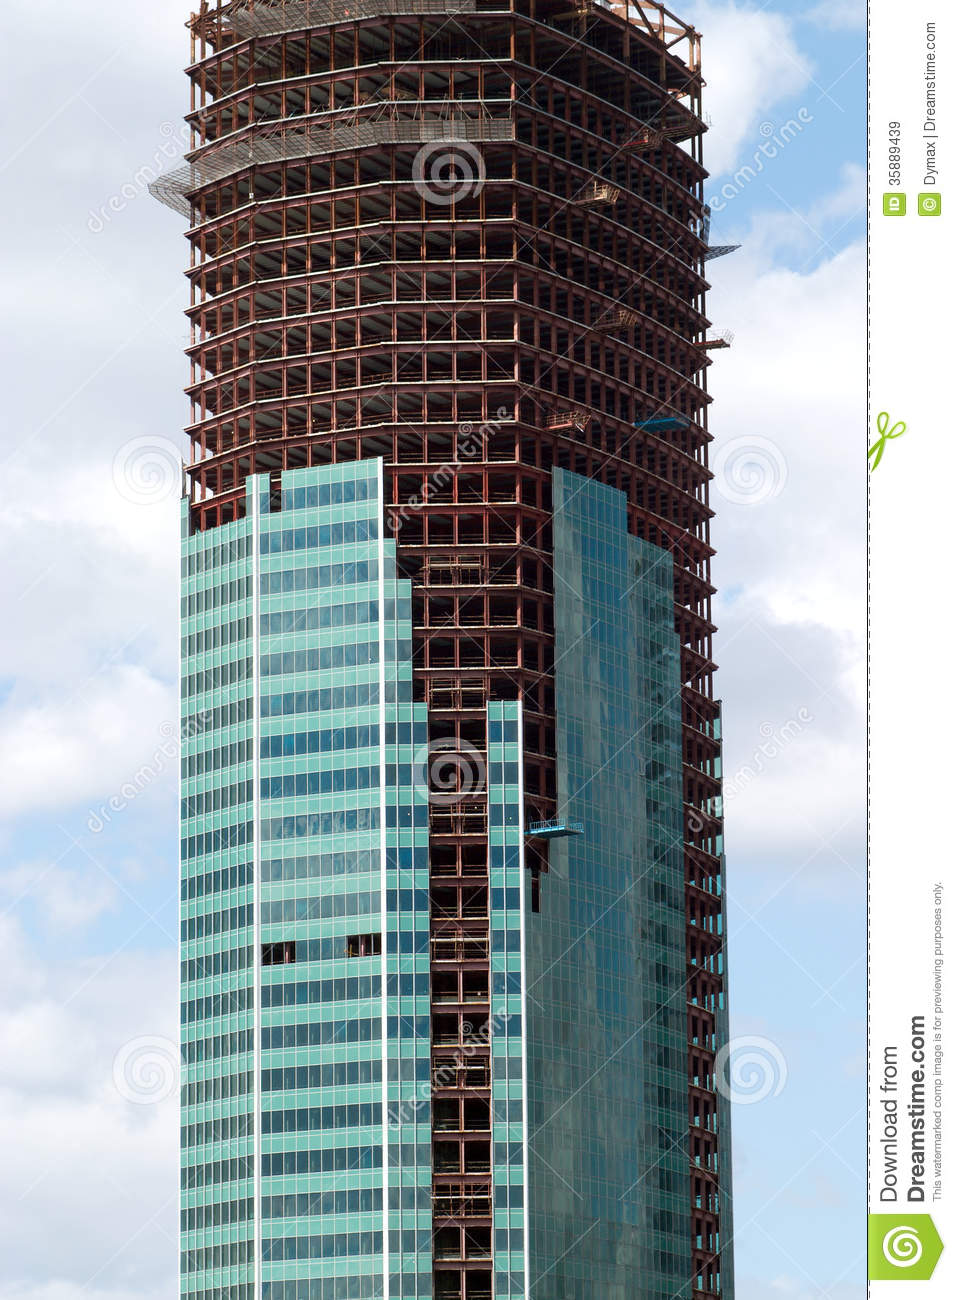 Office Skyscraper Construction Stock Image  Image 35889439